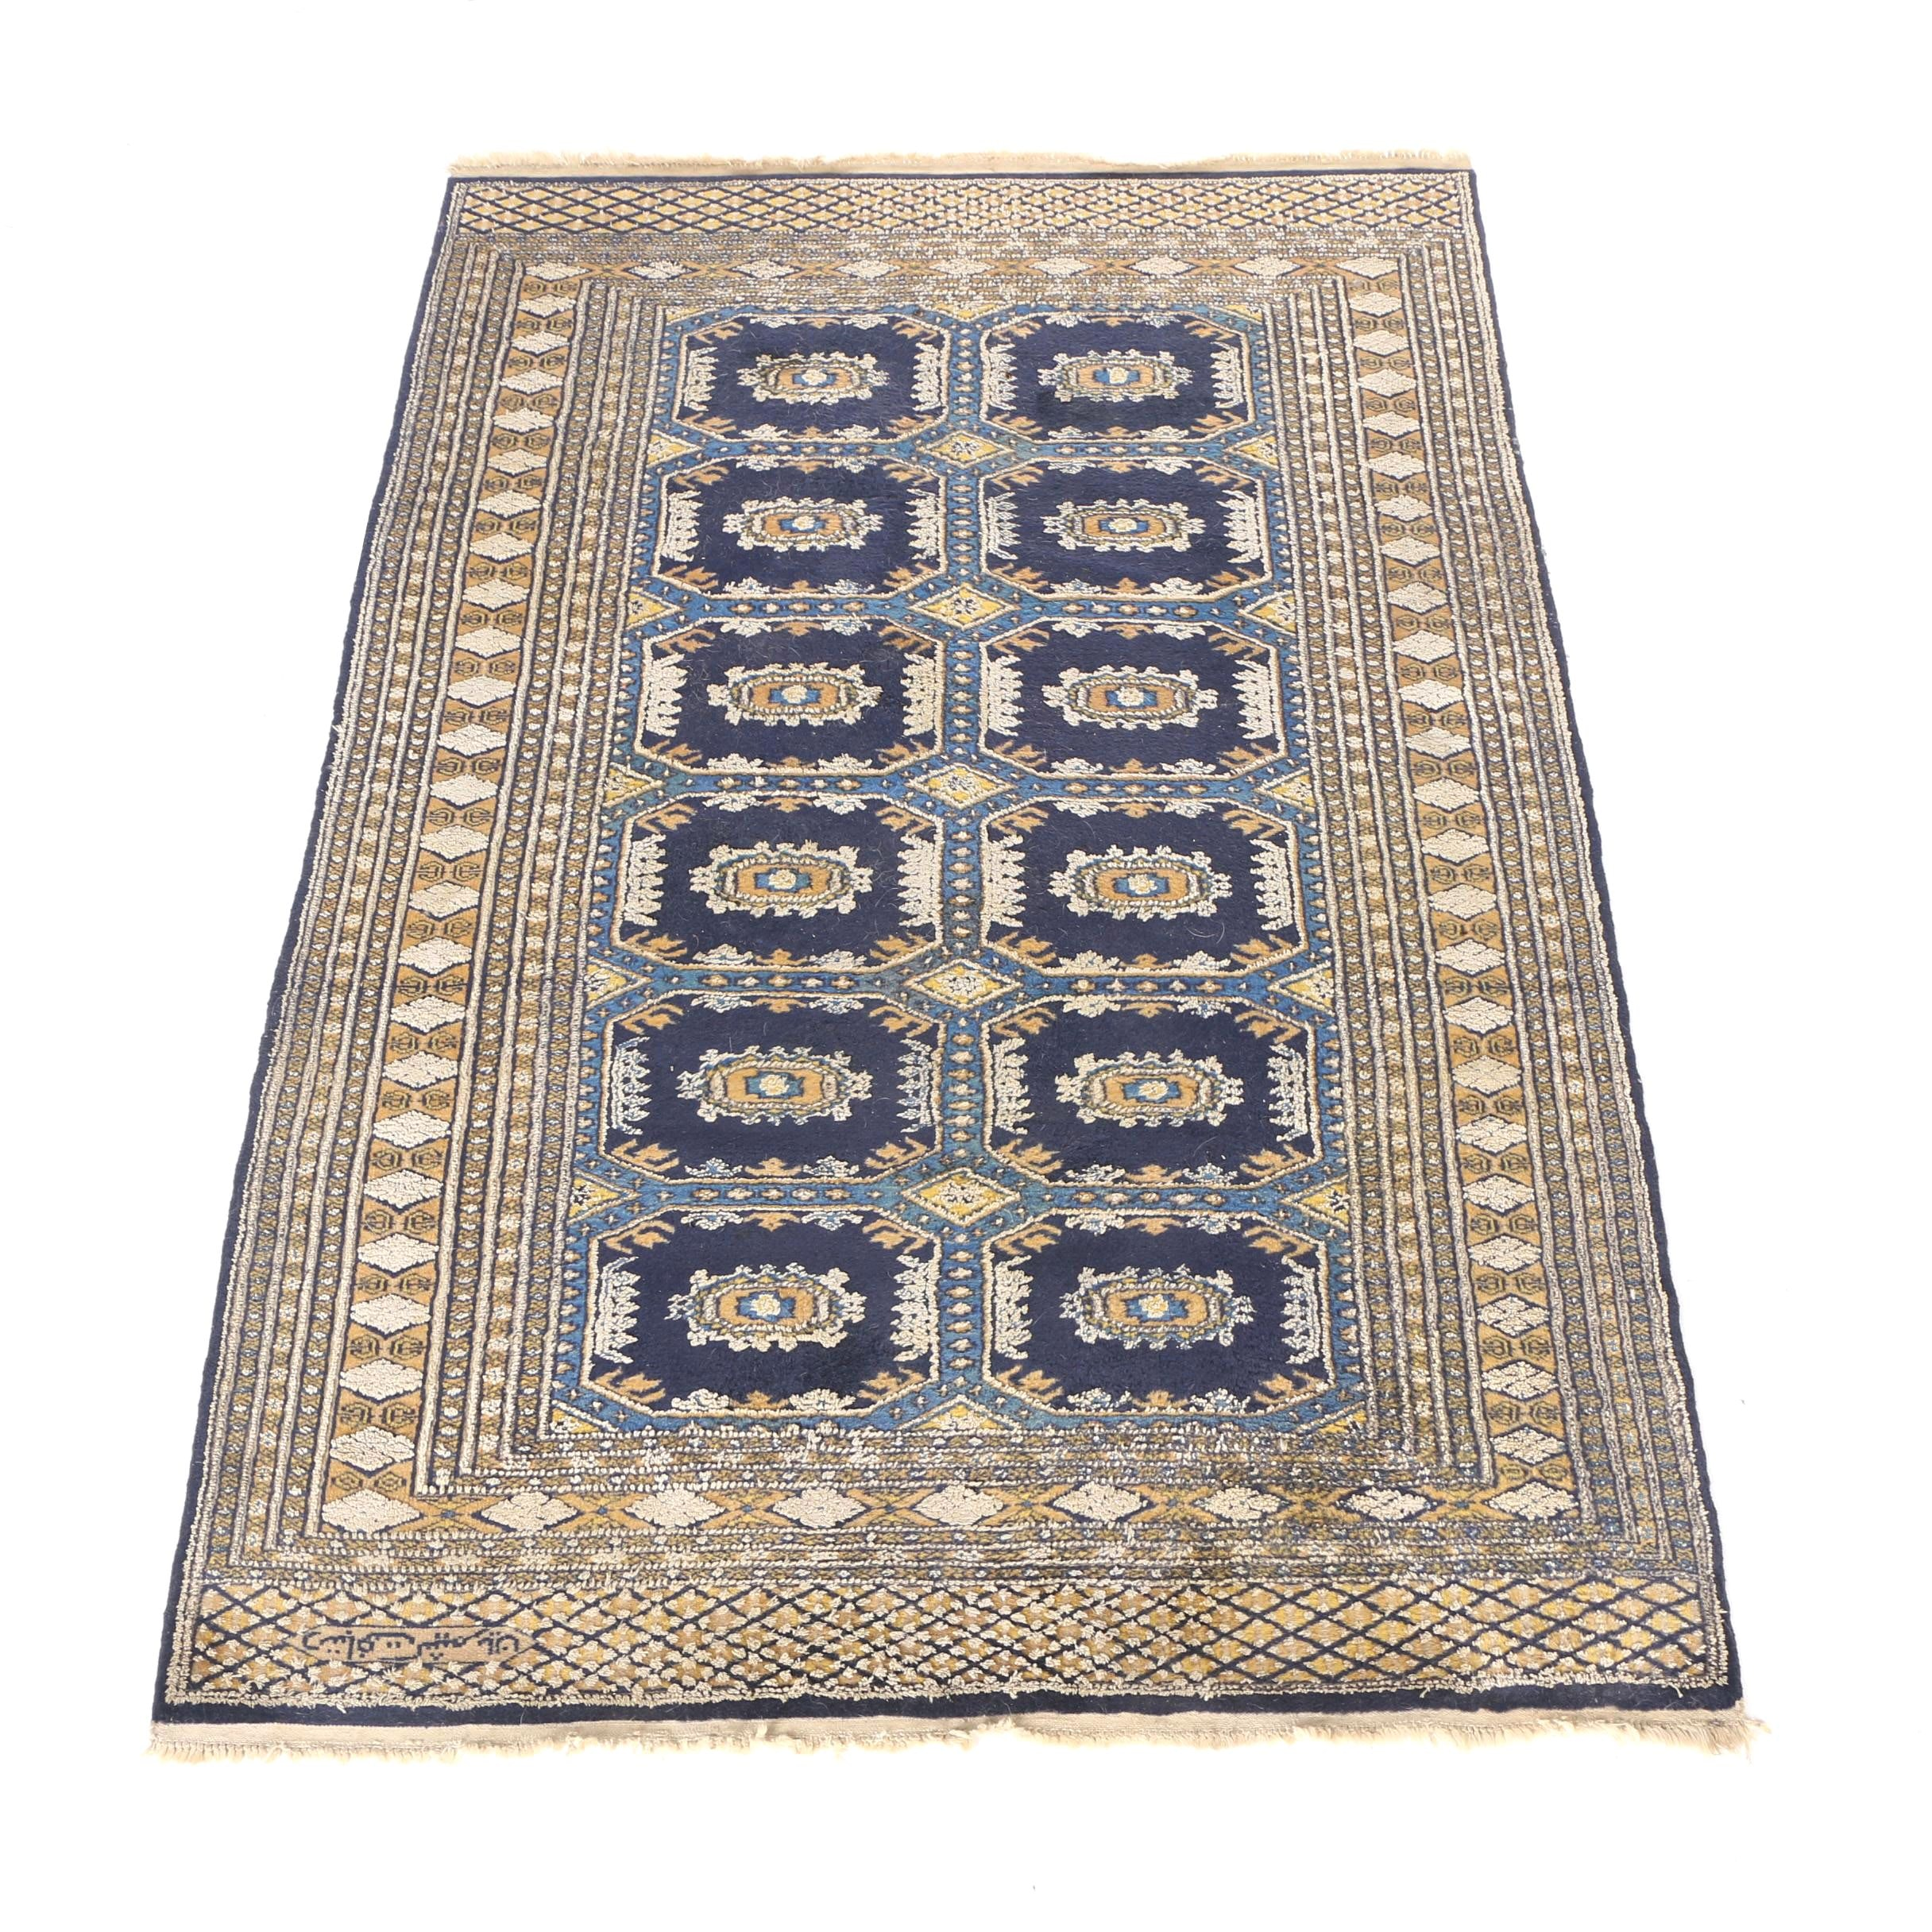 Signed Hand-Knotted Bokhara Area Rug